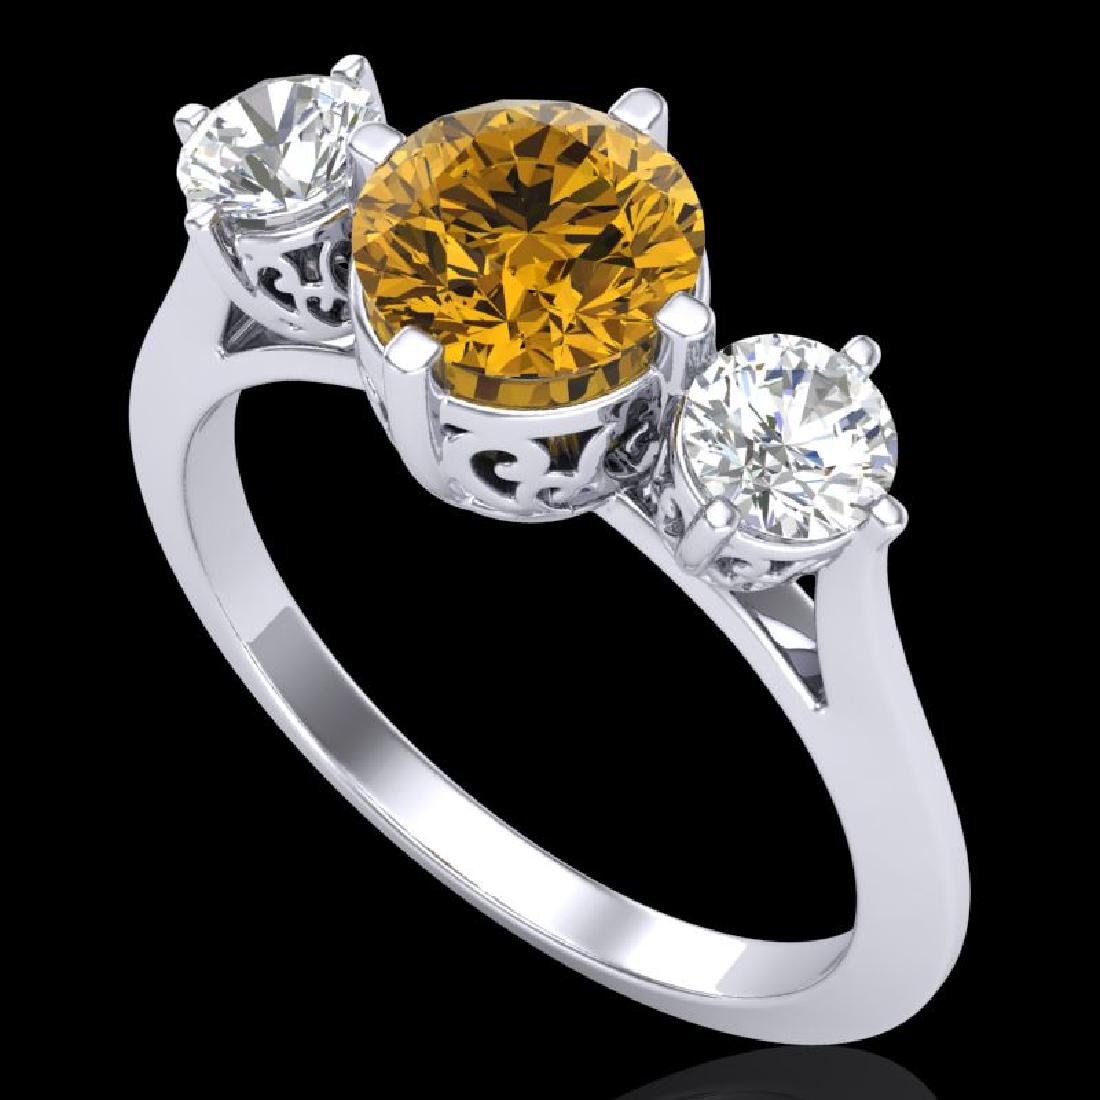 1.51 CTW Intense Fancy Yellow Diamond Art Deco 3 Stone